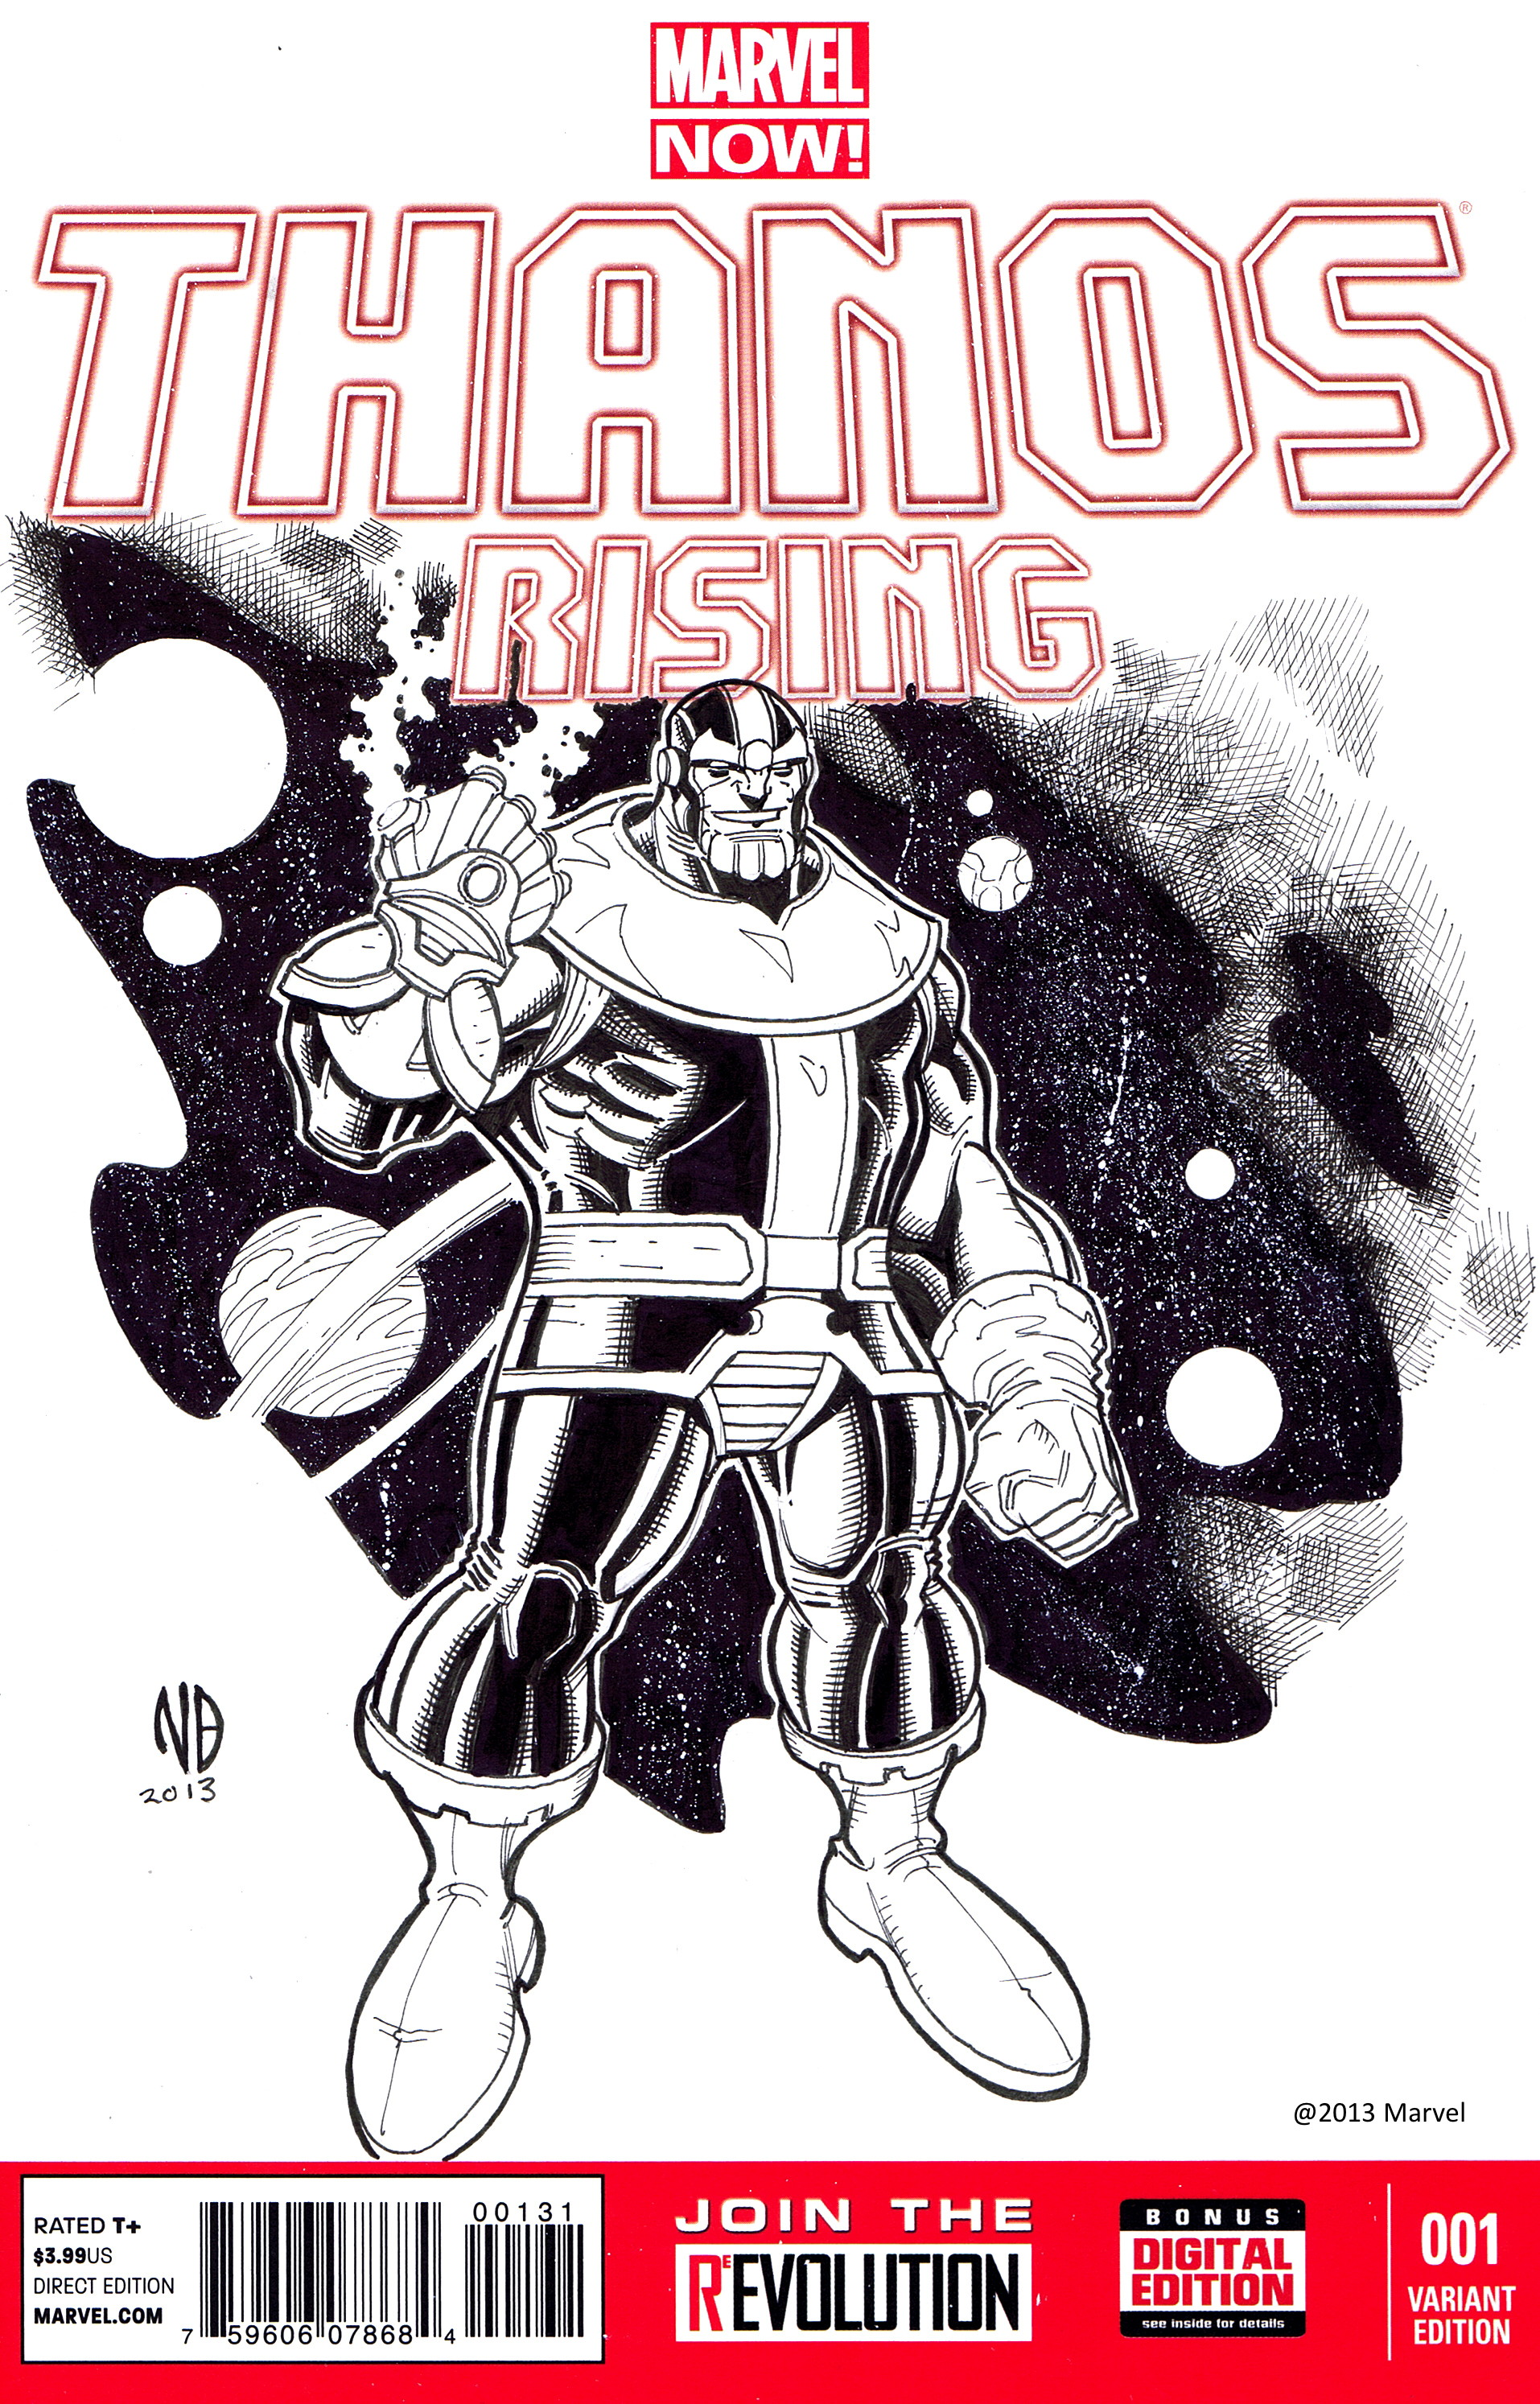 Nick Bradshaw Thanos Sketch